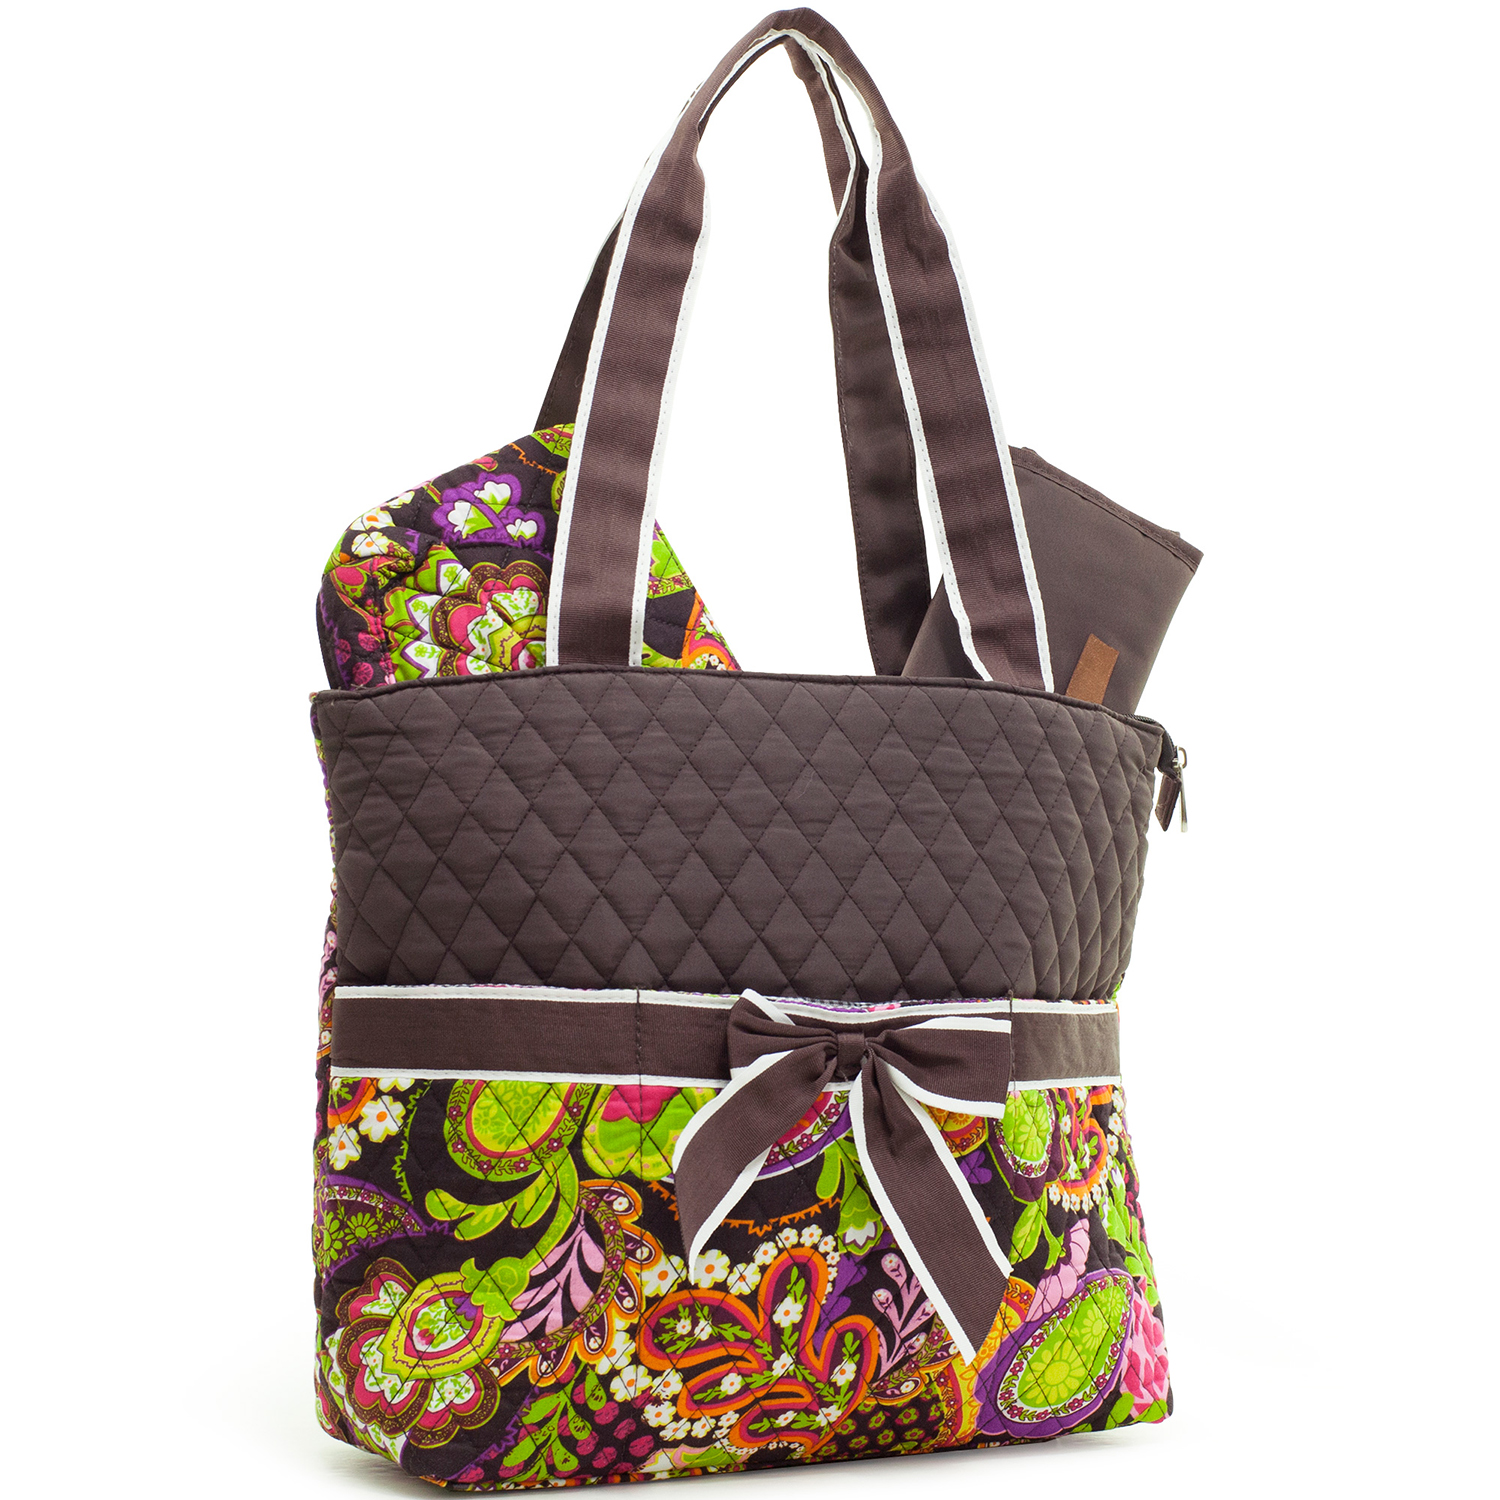 Quilted Paisley Floral Print Diaper Tote with Changing Mat